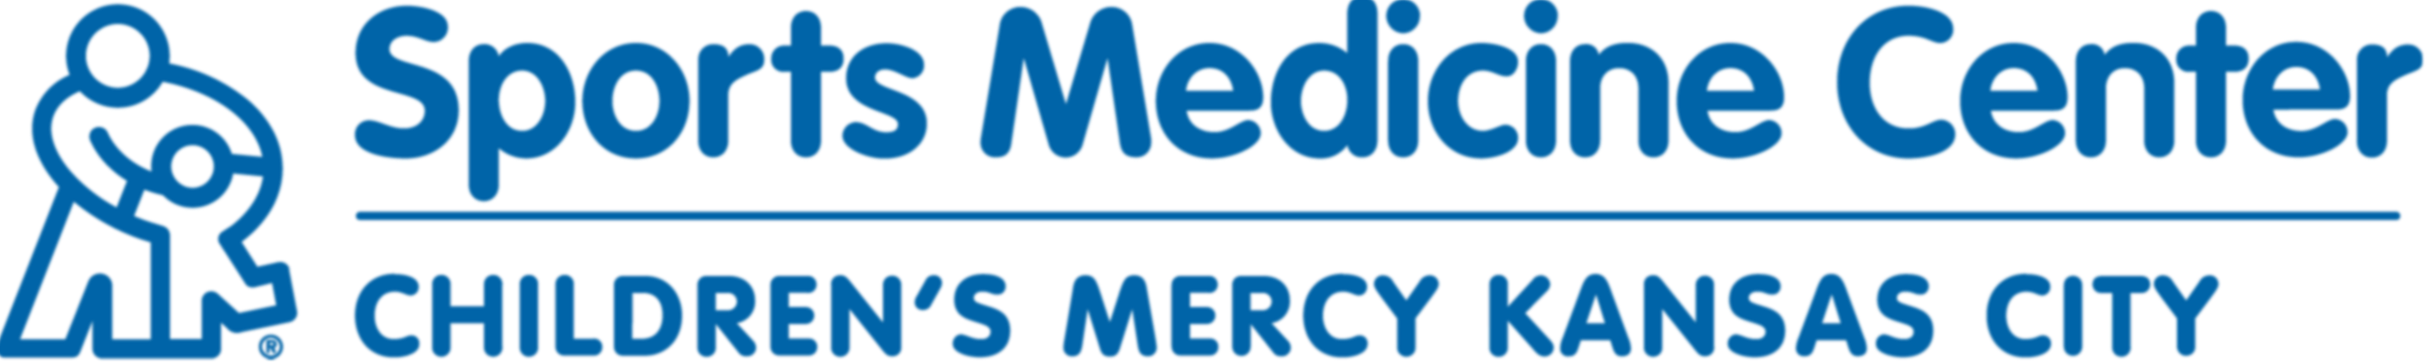 Children's Mercy Sports Medicine